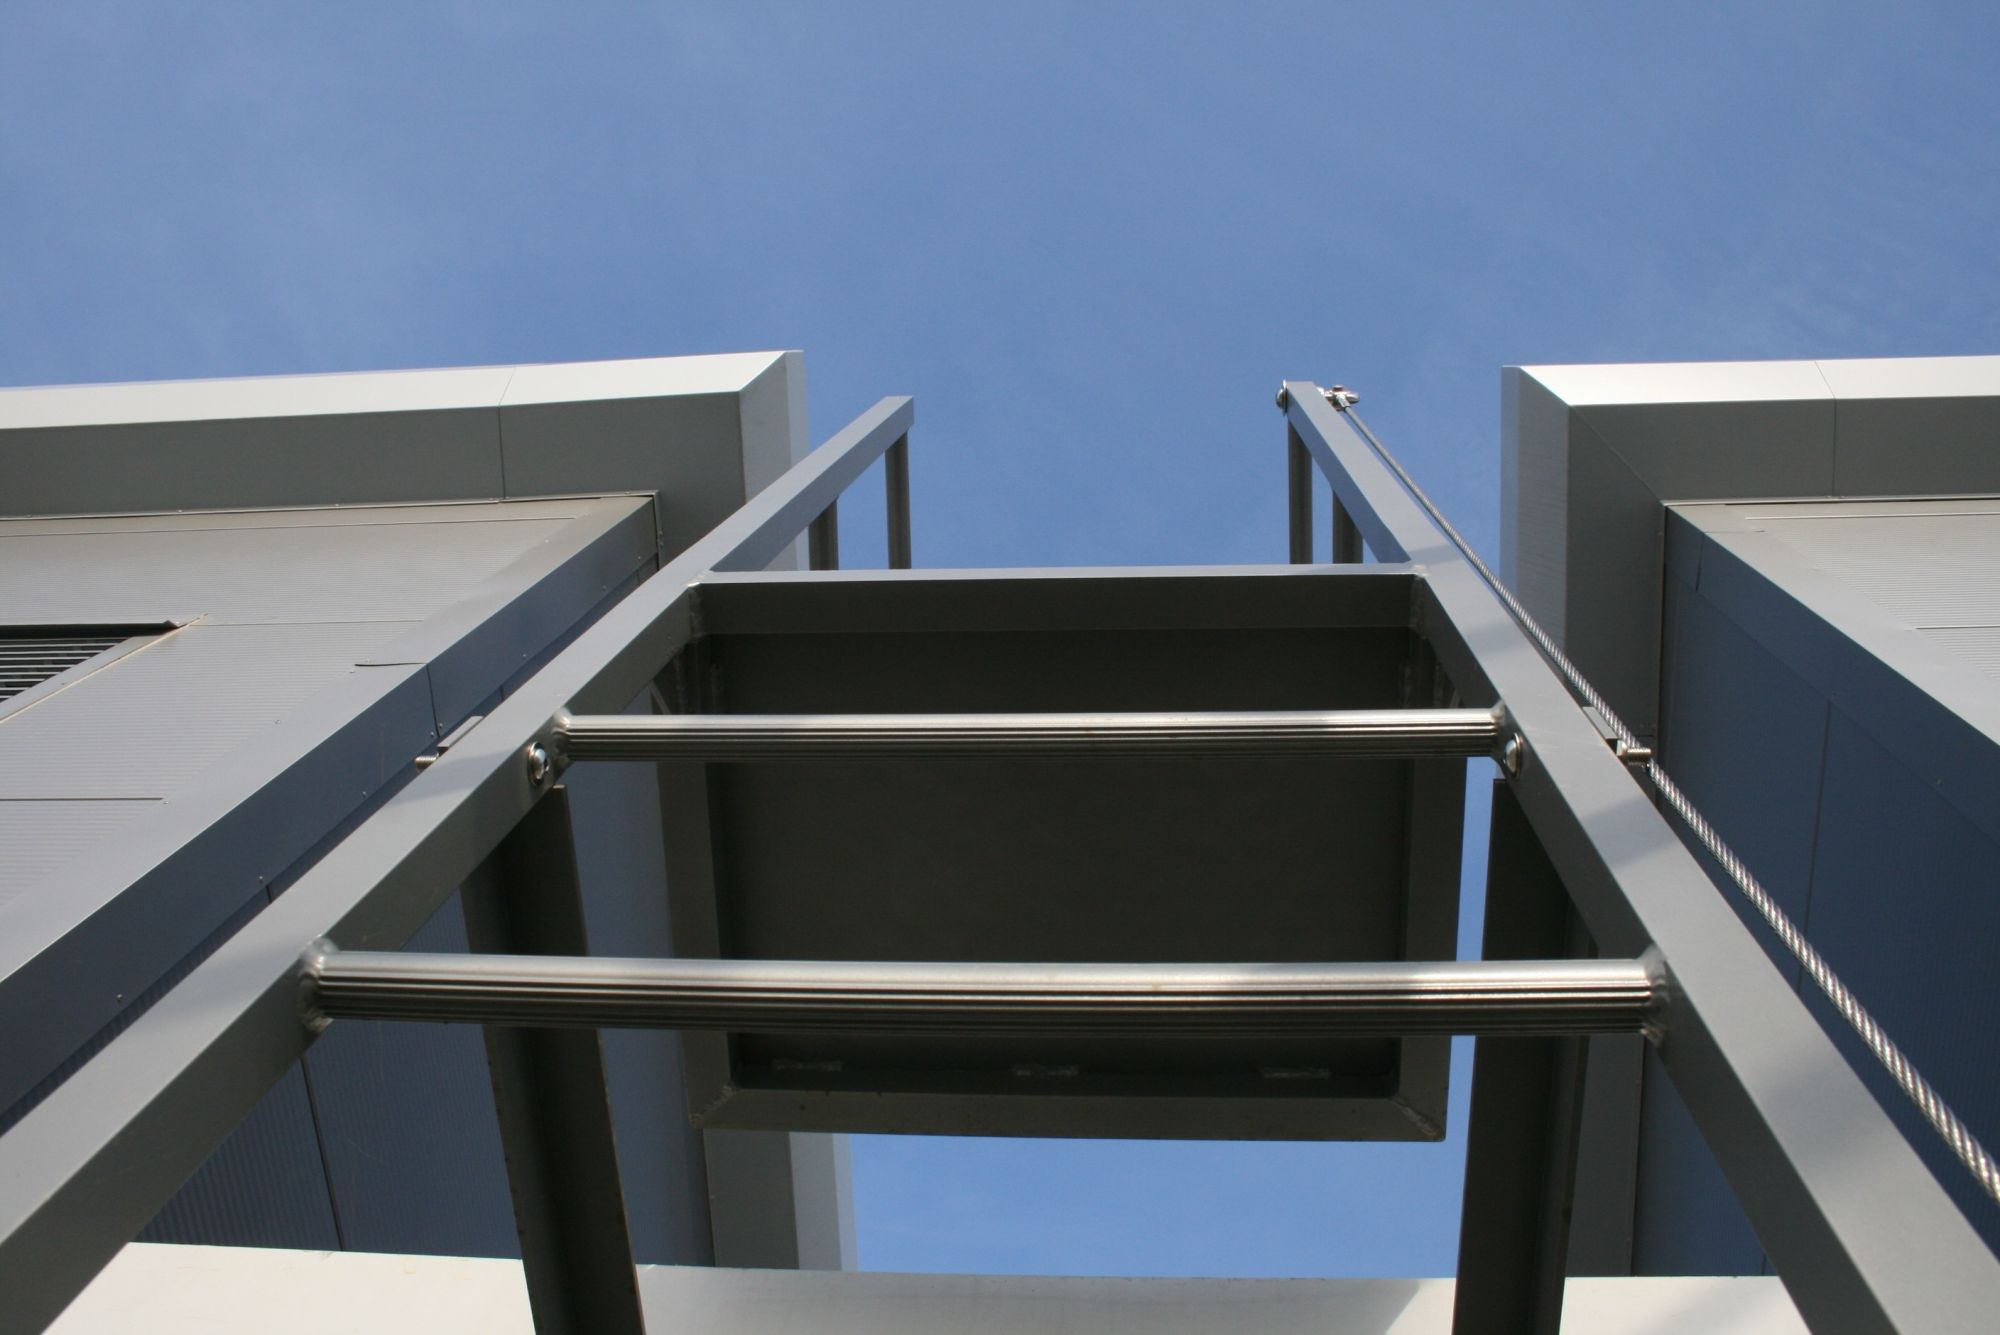 Fixed Access Ladders Permanent Safety Ladders Sayfa Systems